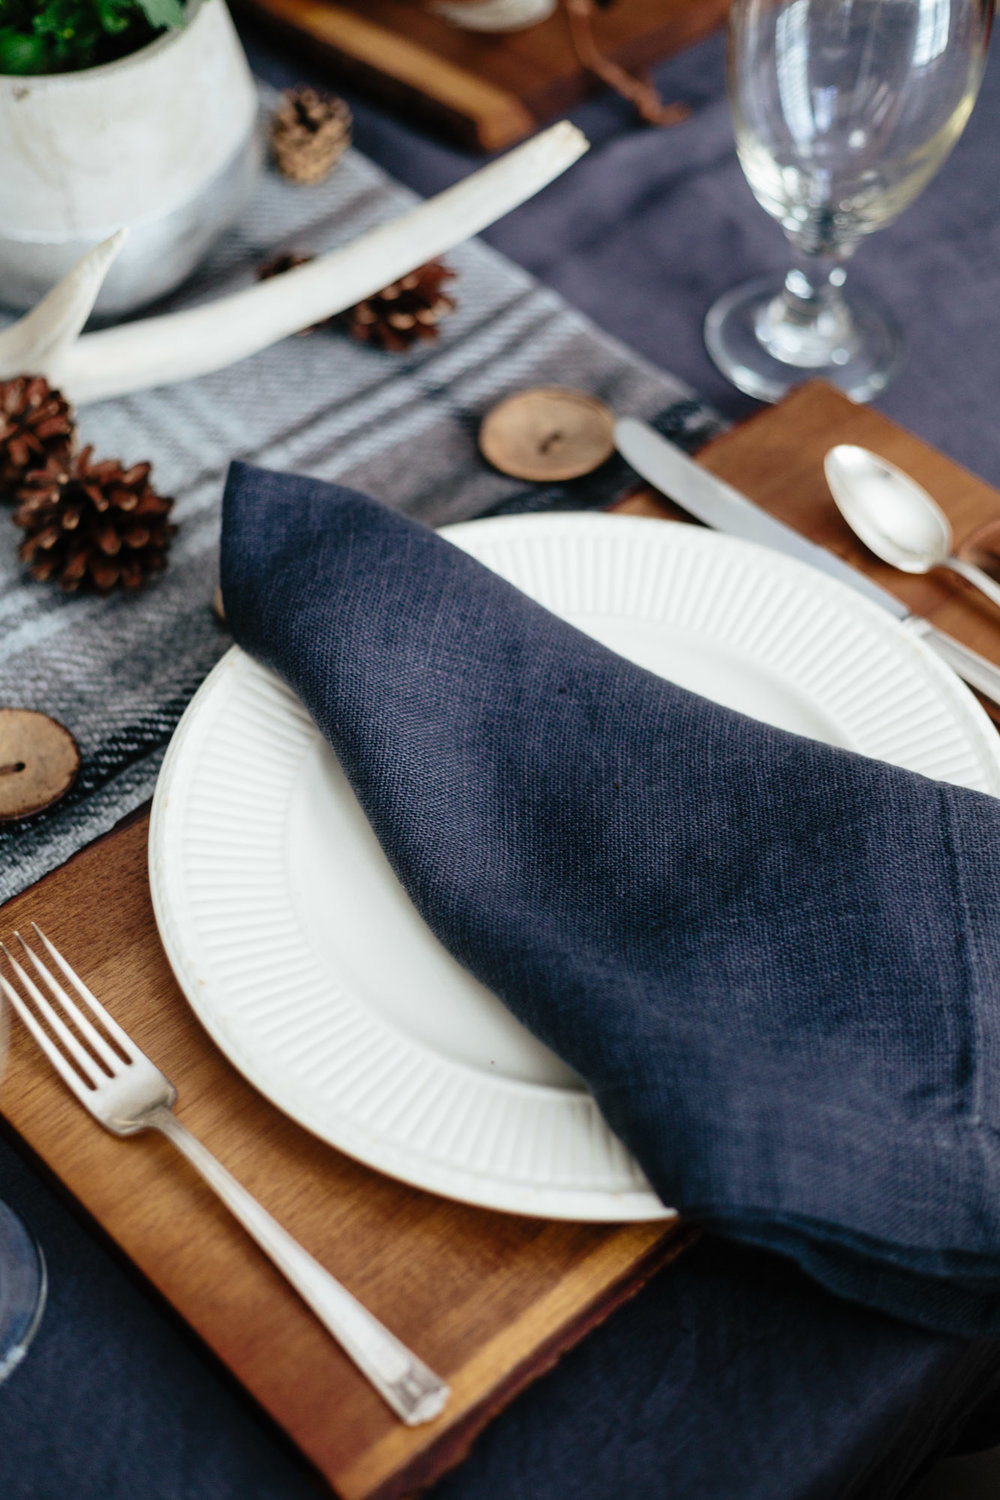 Wood cutting board adds warmth to a gray tablesetting | Designer: Carla Aston, Photographer: Tori Aston #tablesetting #falltabletop #entertaining